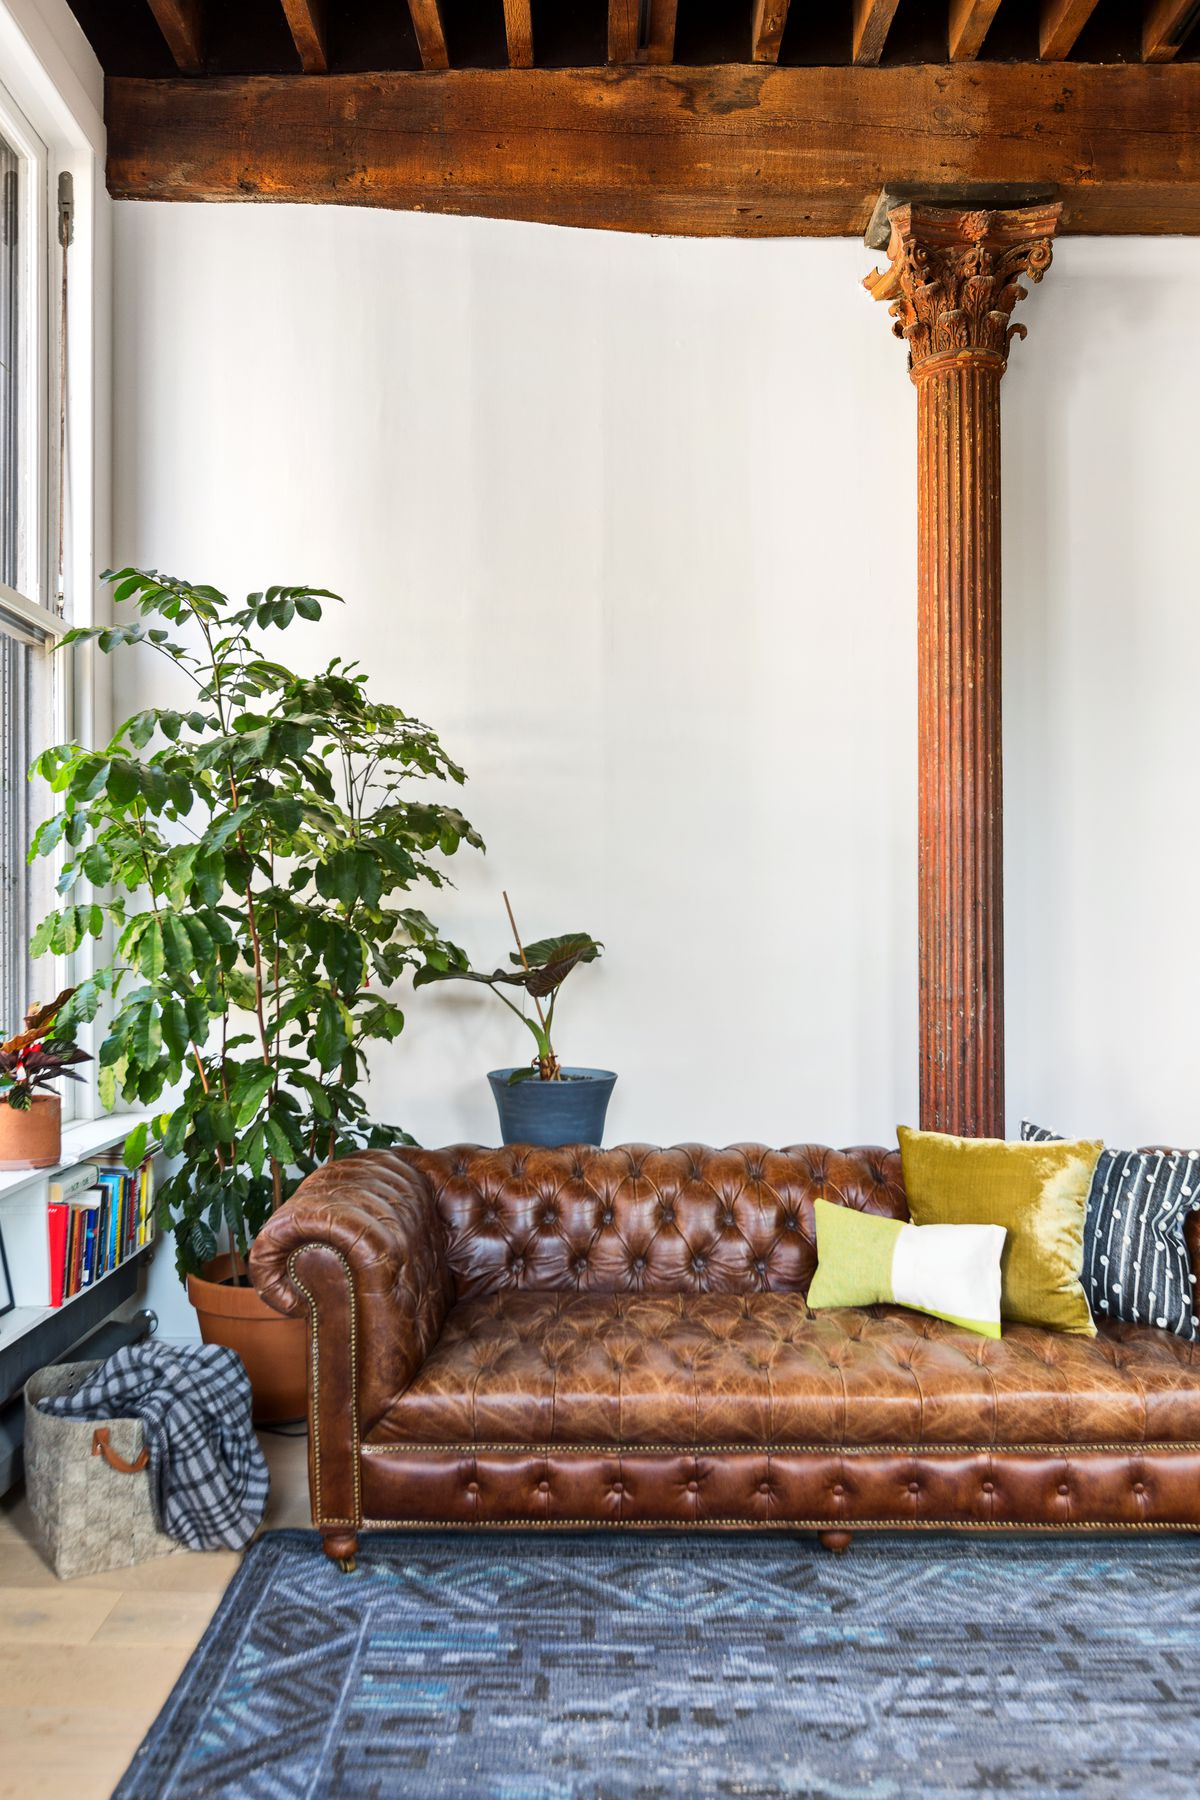 A living area with a brown leather couch, high ceilings, white walls, and a filigreed column in the back.